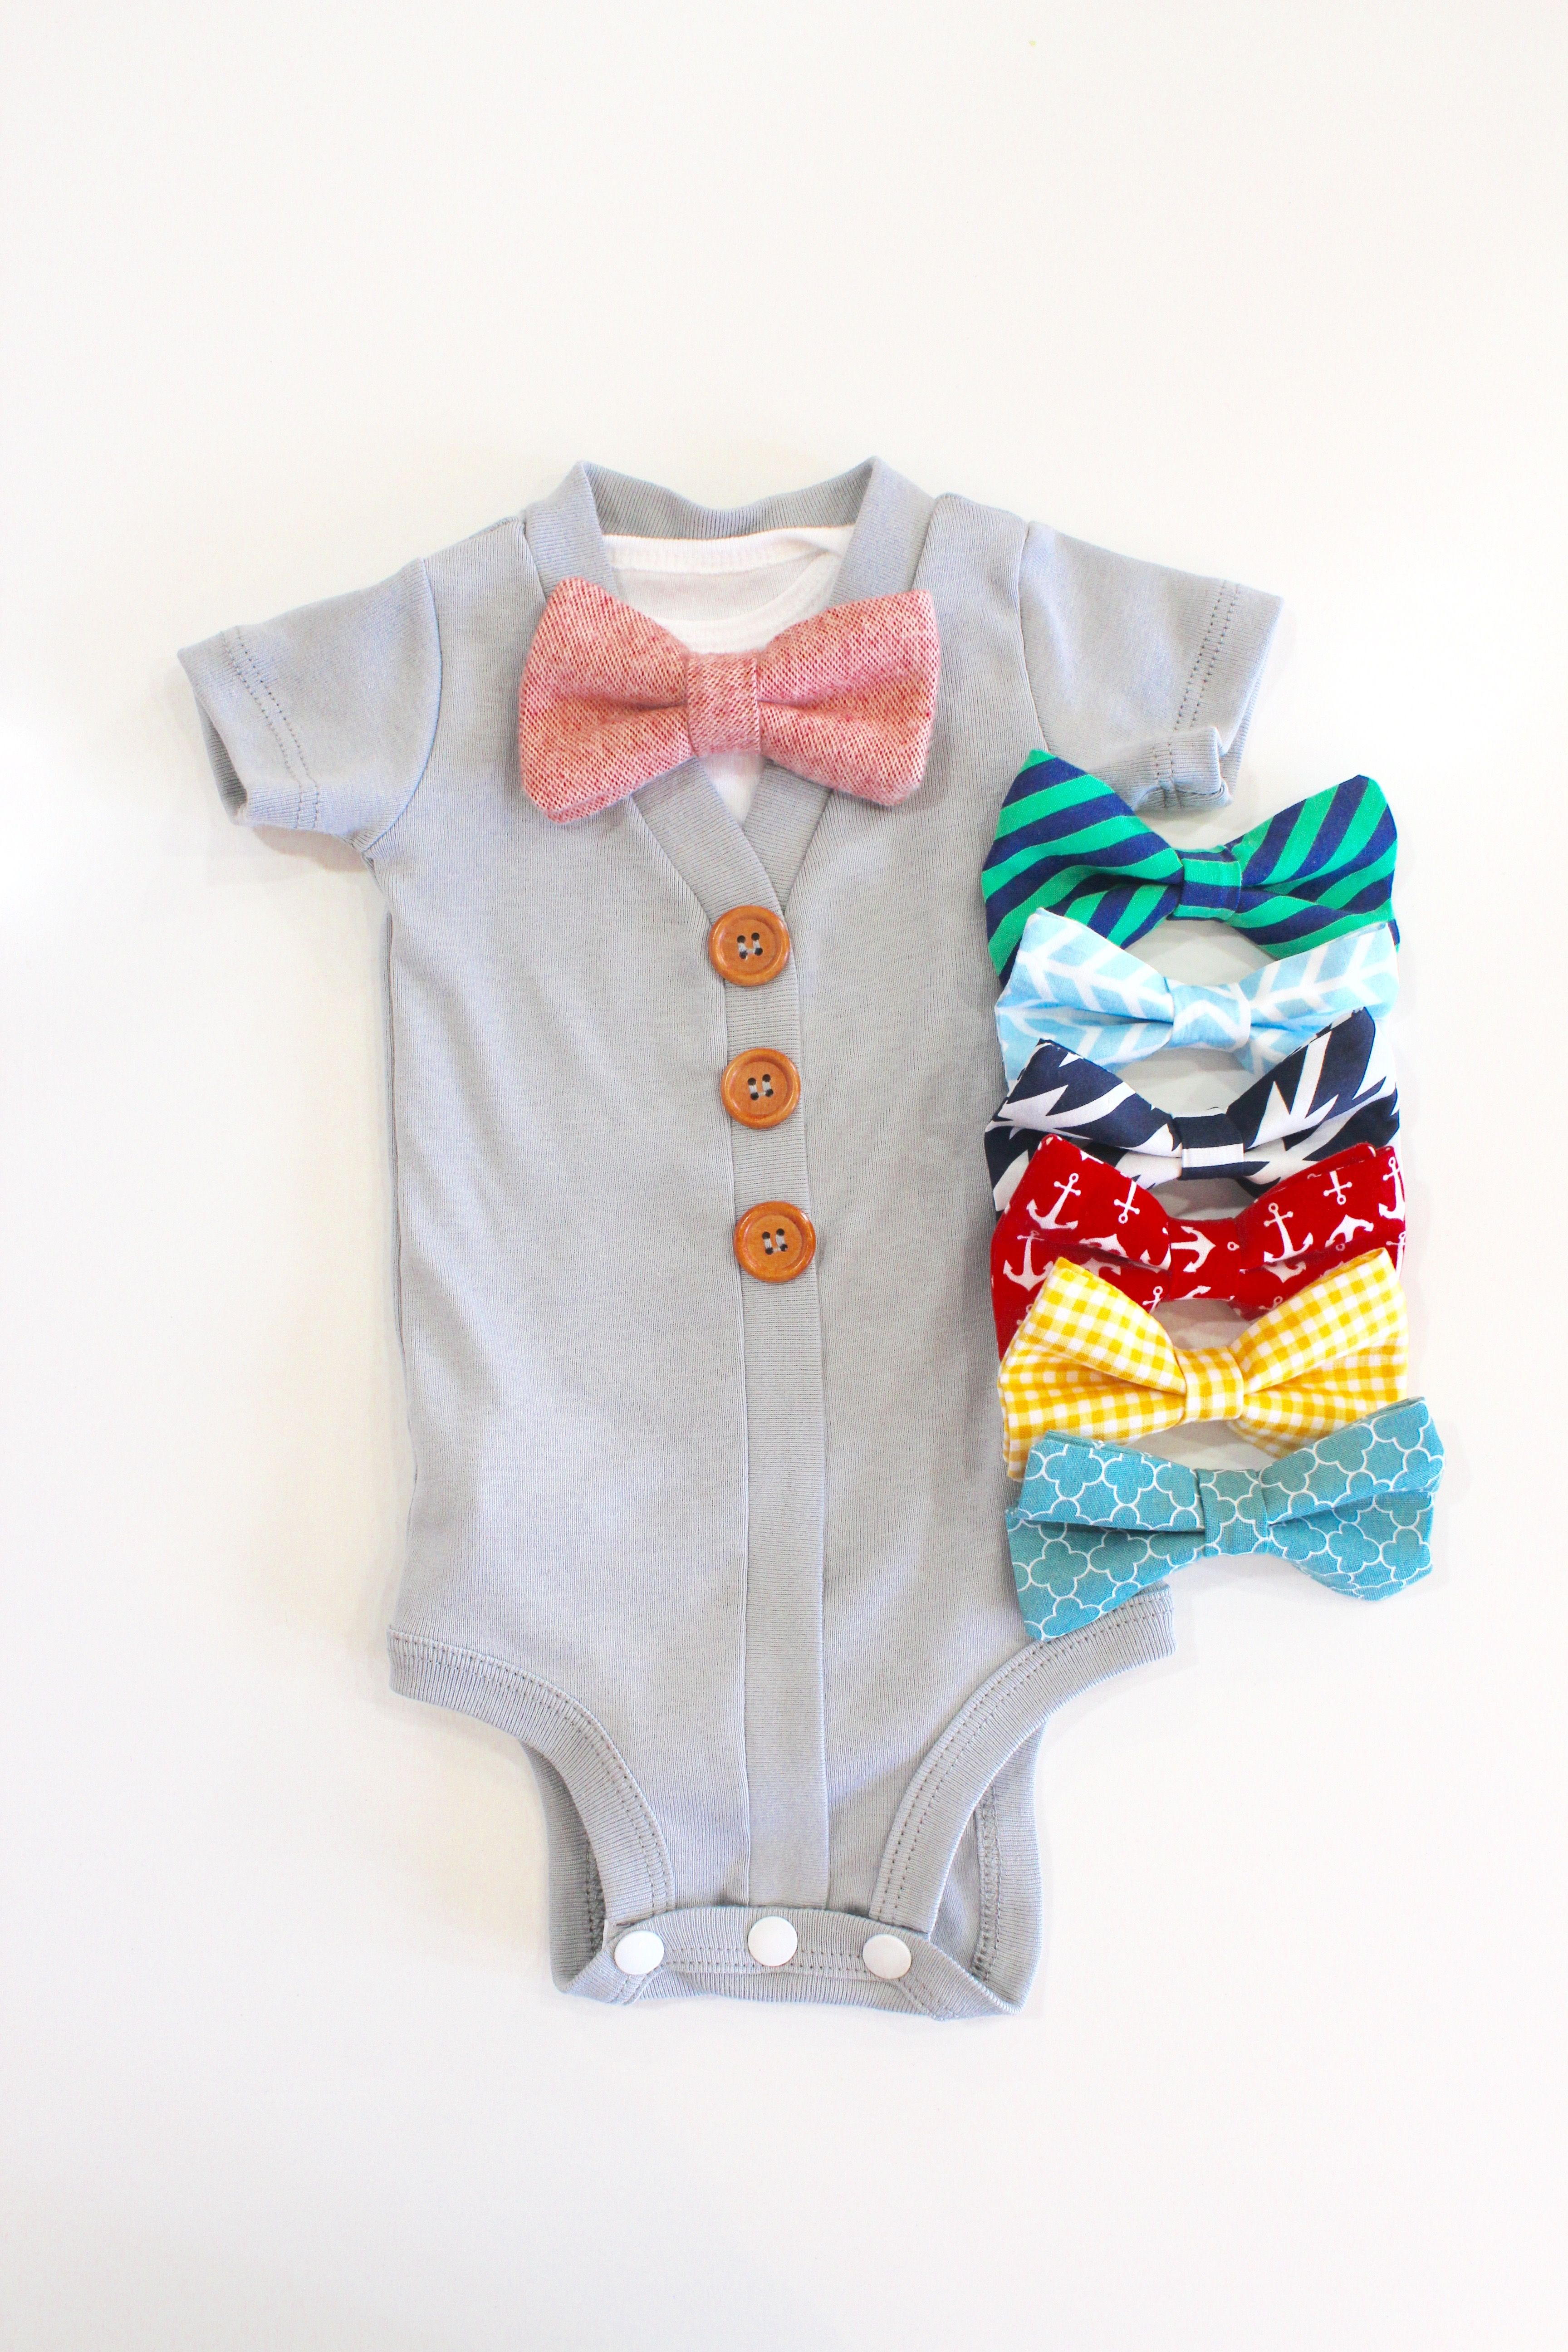 So Cute Baby Boy Take Home Outfit Cardigan Onesie With